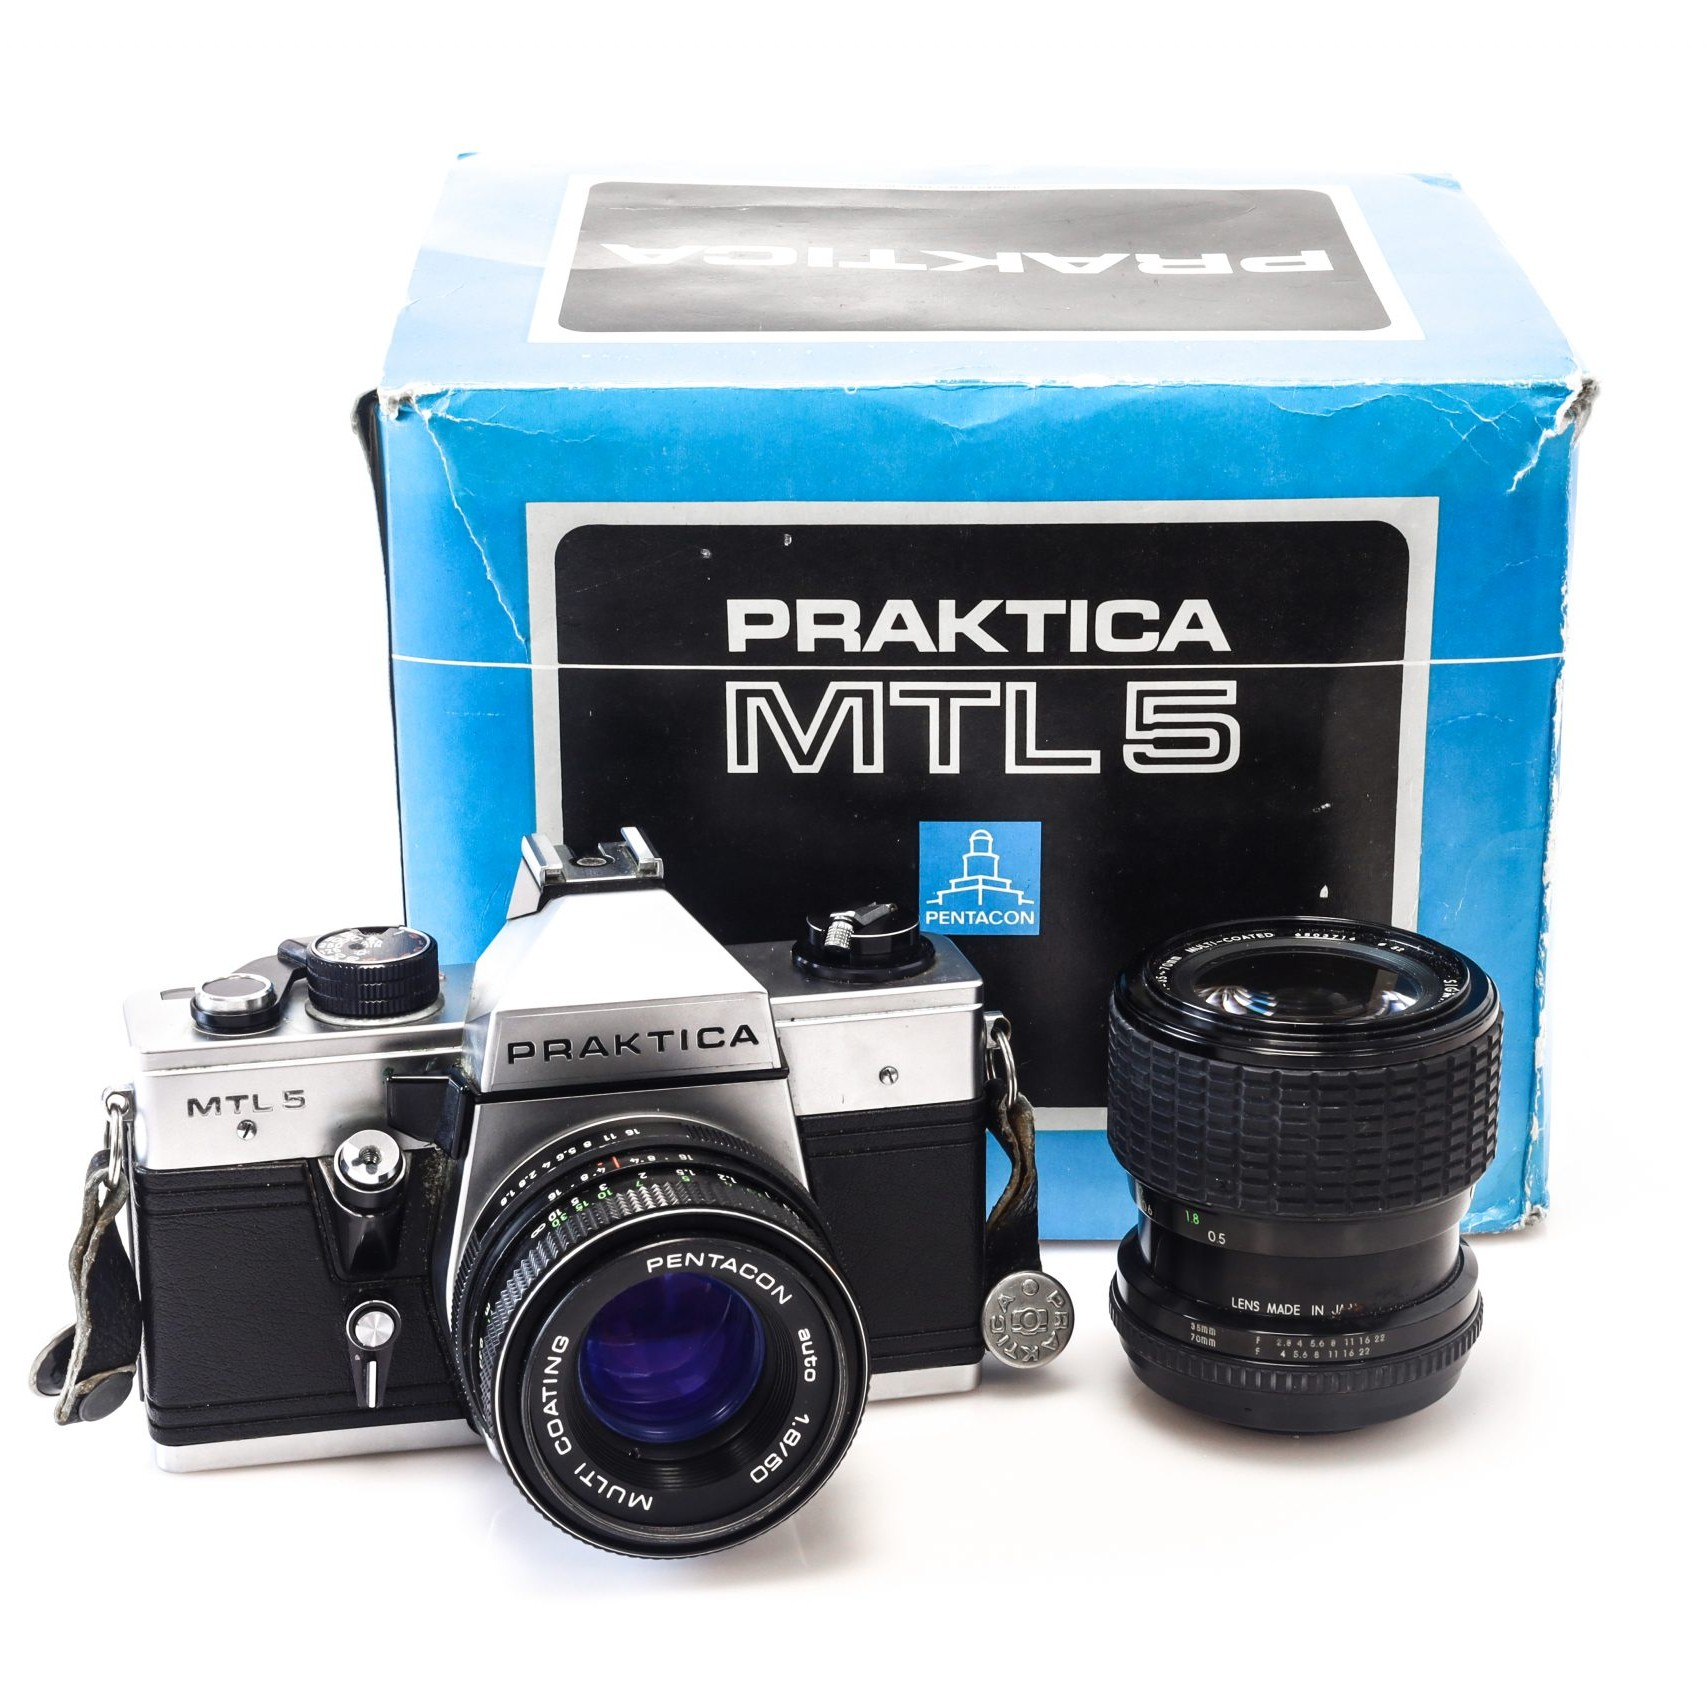 Praktica MTL 5 with 50mm Pentacon Lens + ORIGINAL BOX + Faulty Sigma 35-70mm Lens